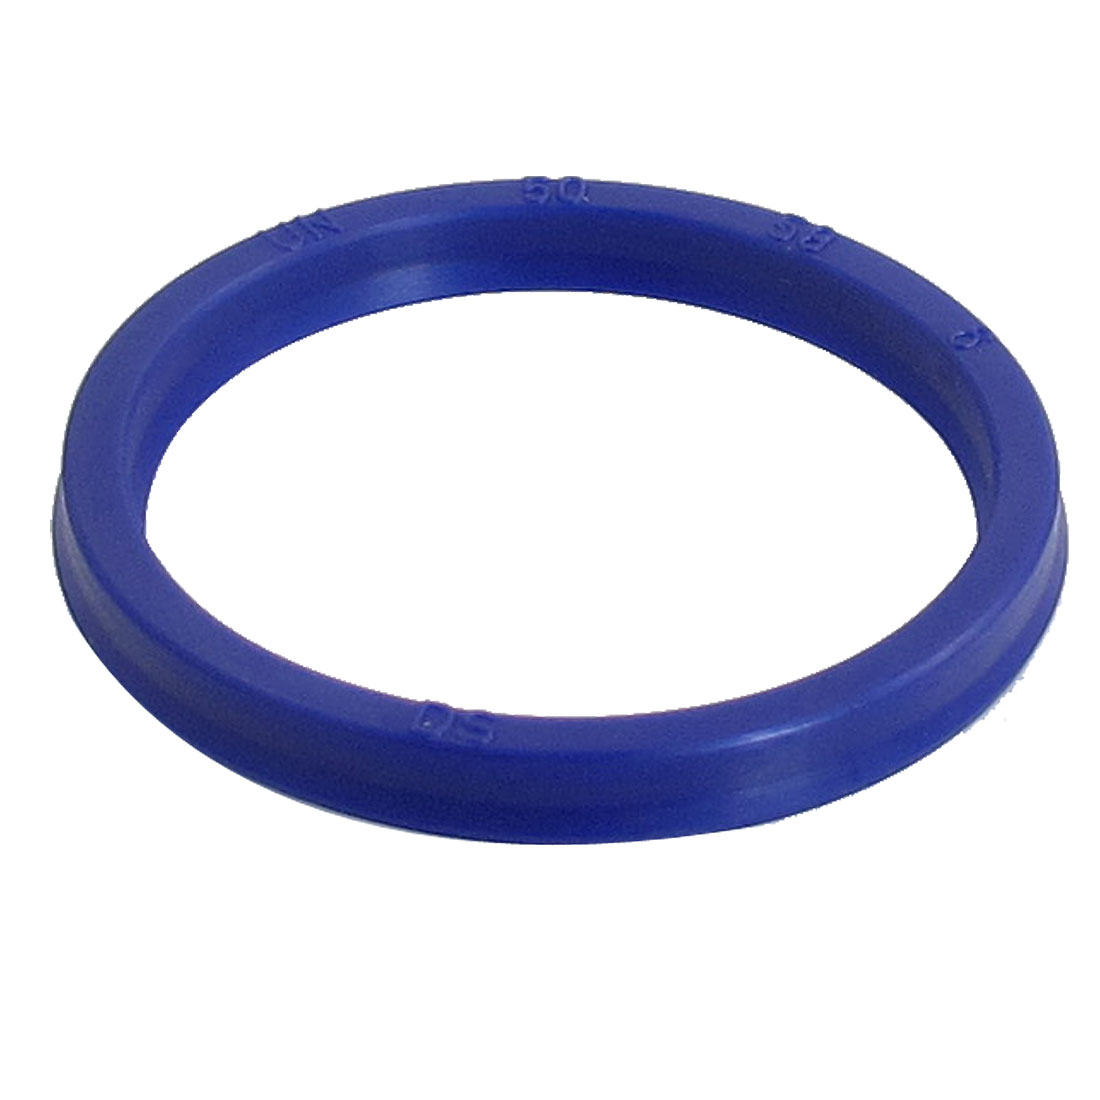 Blue PU 50mm x 58mm x 6mm Double Lip Sealing Cushion Dust Seal Ring